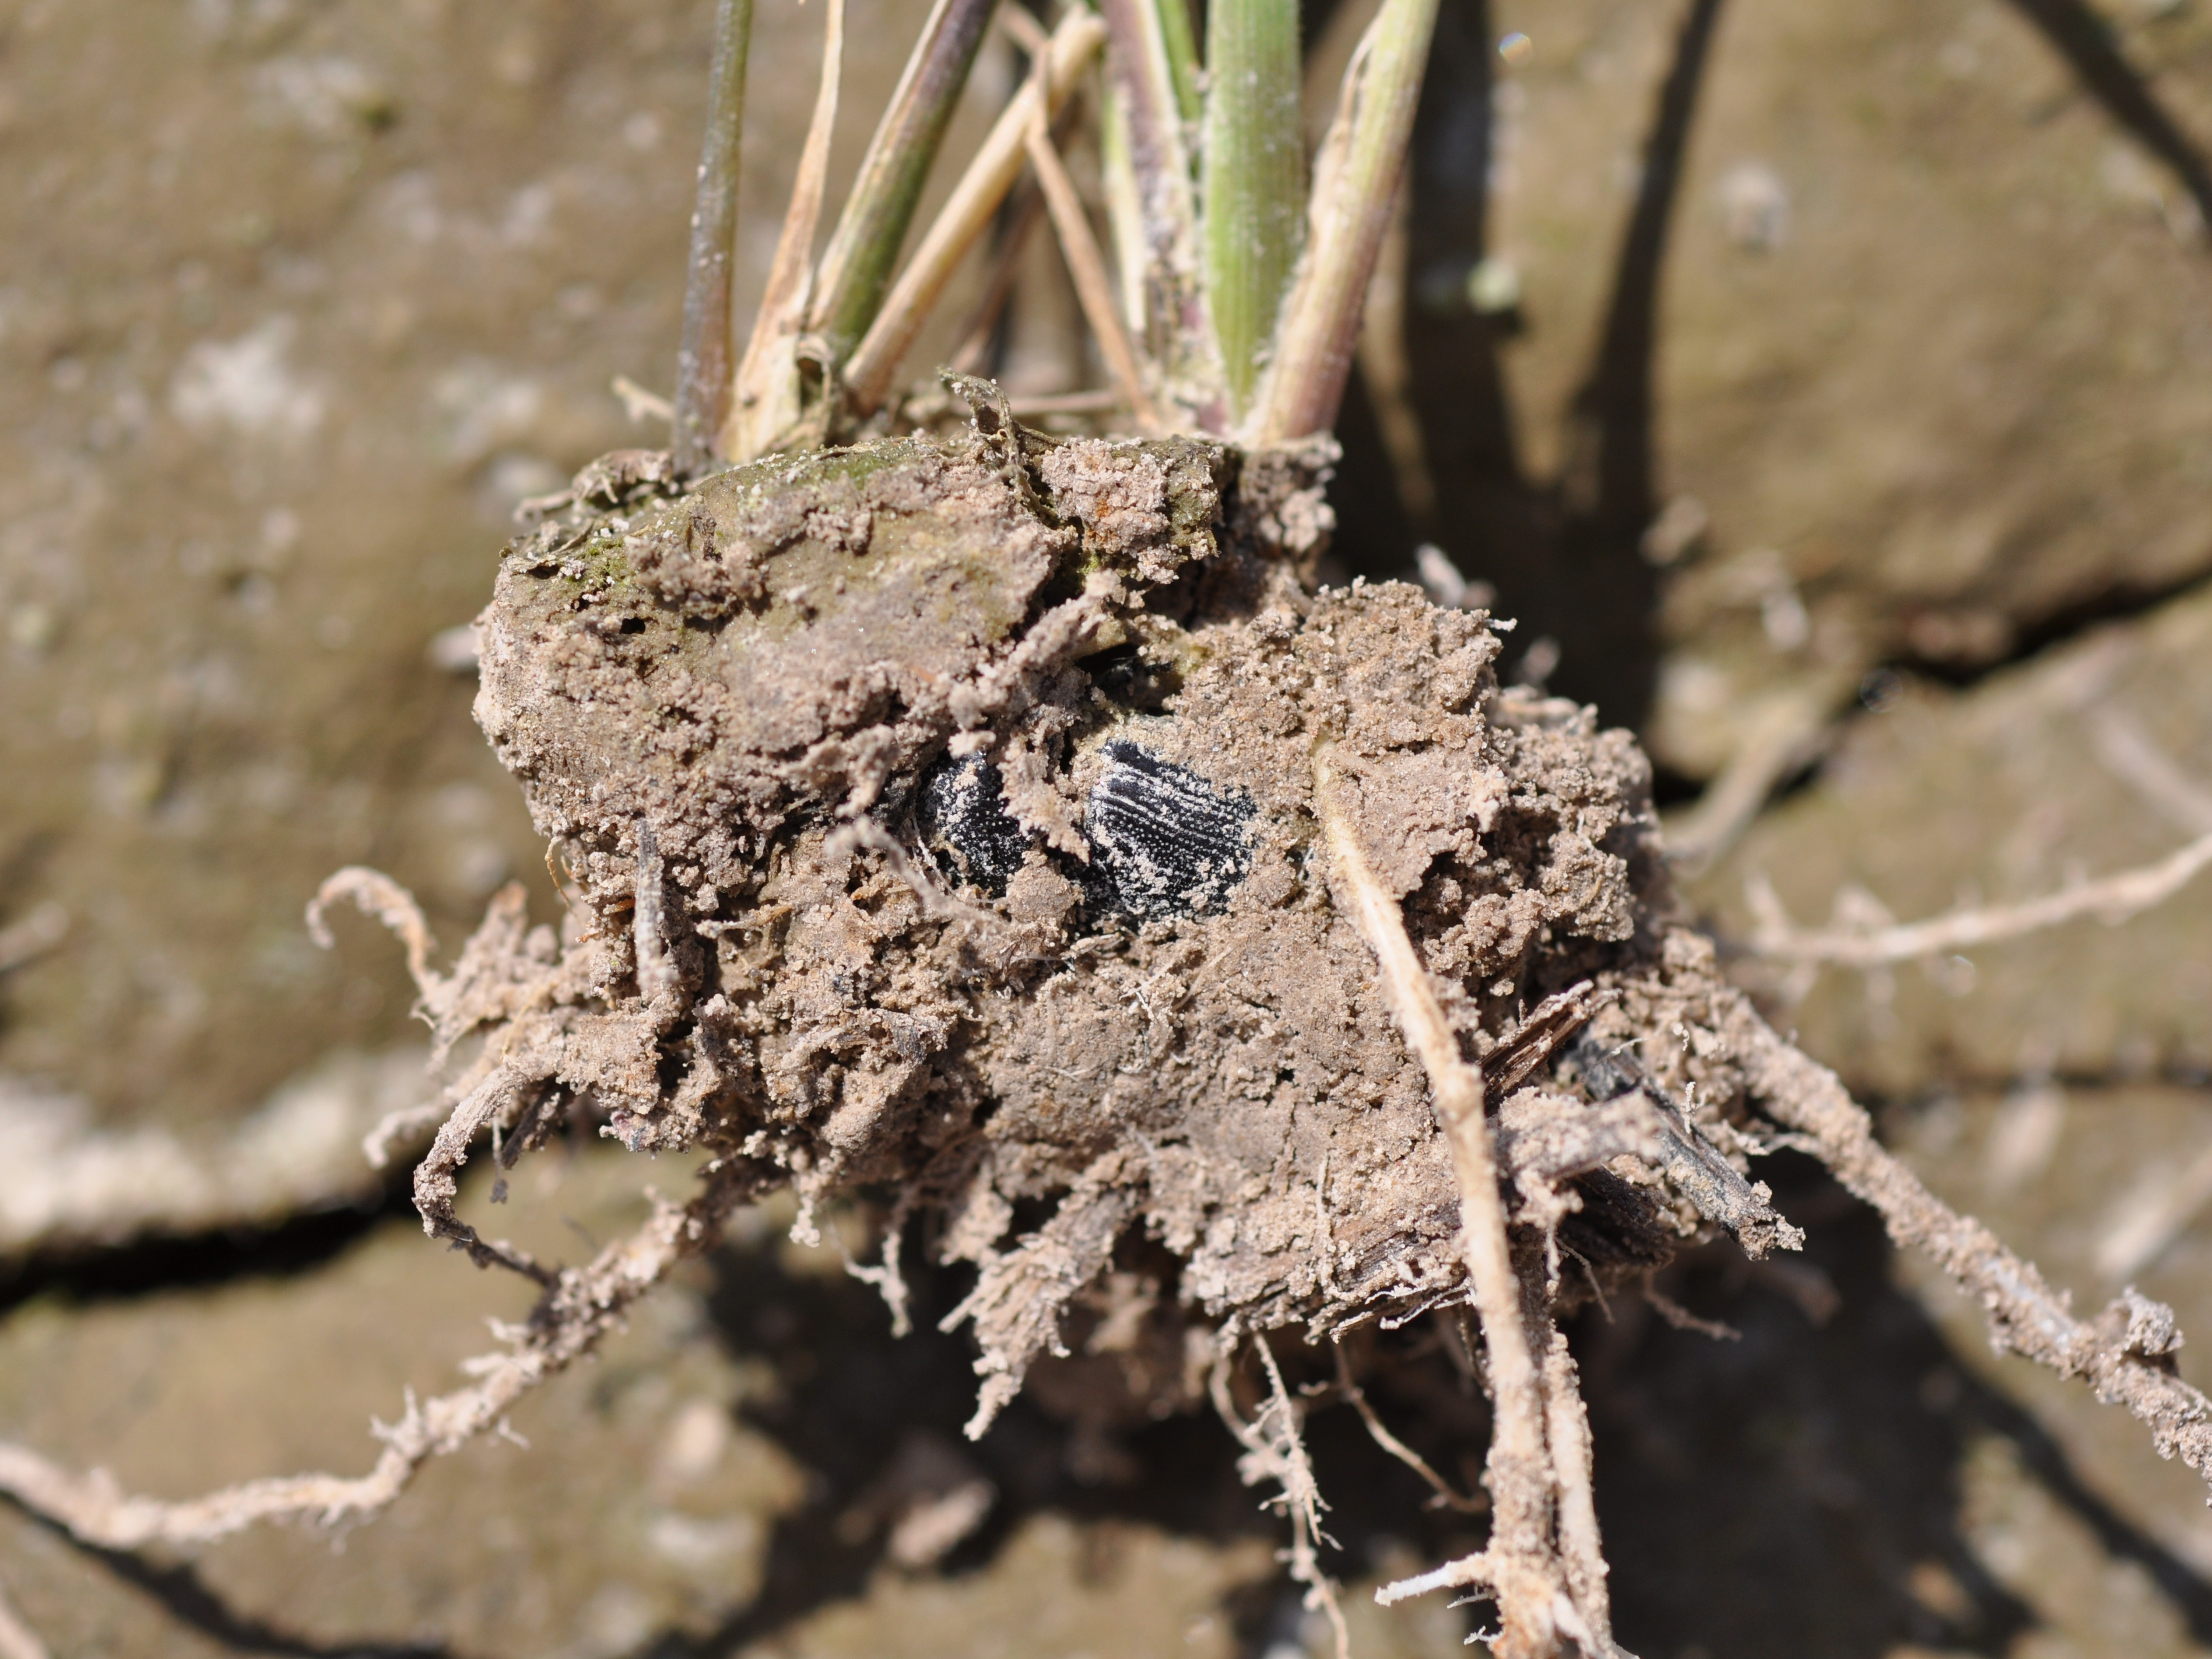 The sugarcane beetles (adults) are injuring the rice by chewing in the crown of the plant.